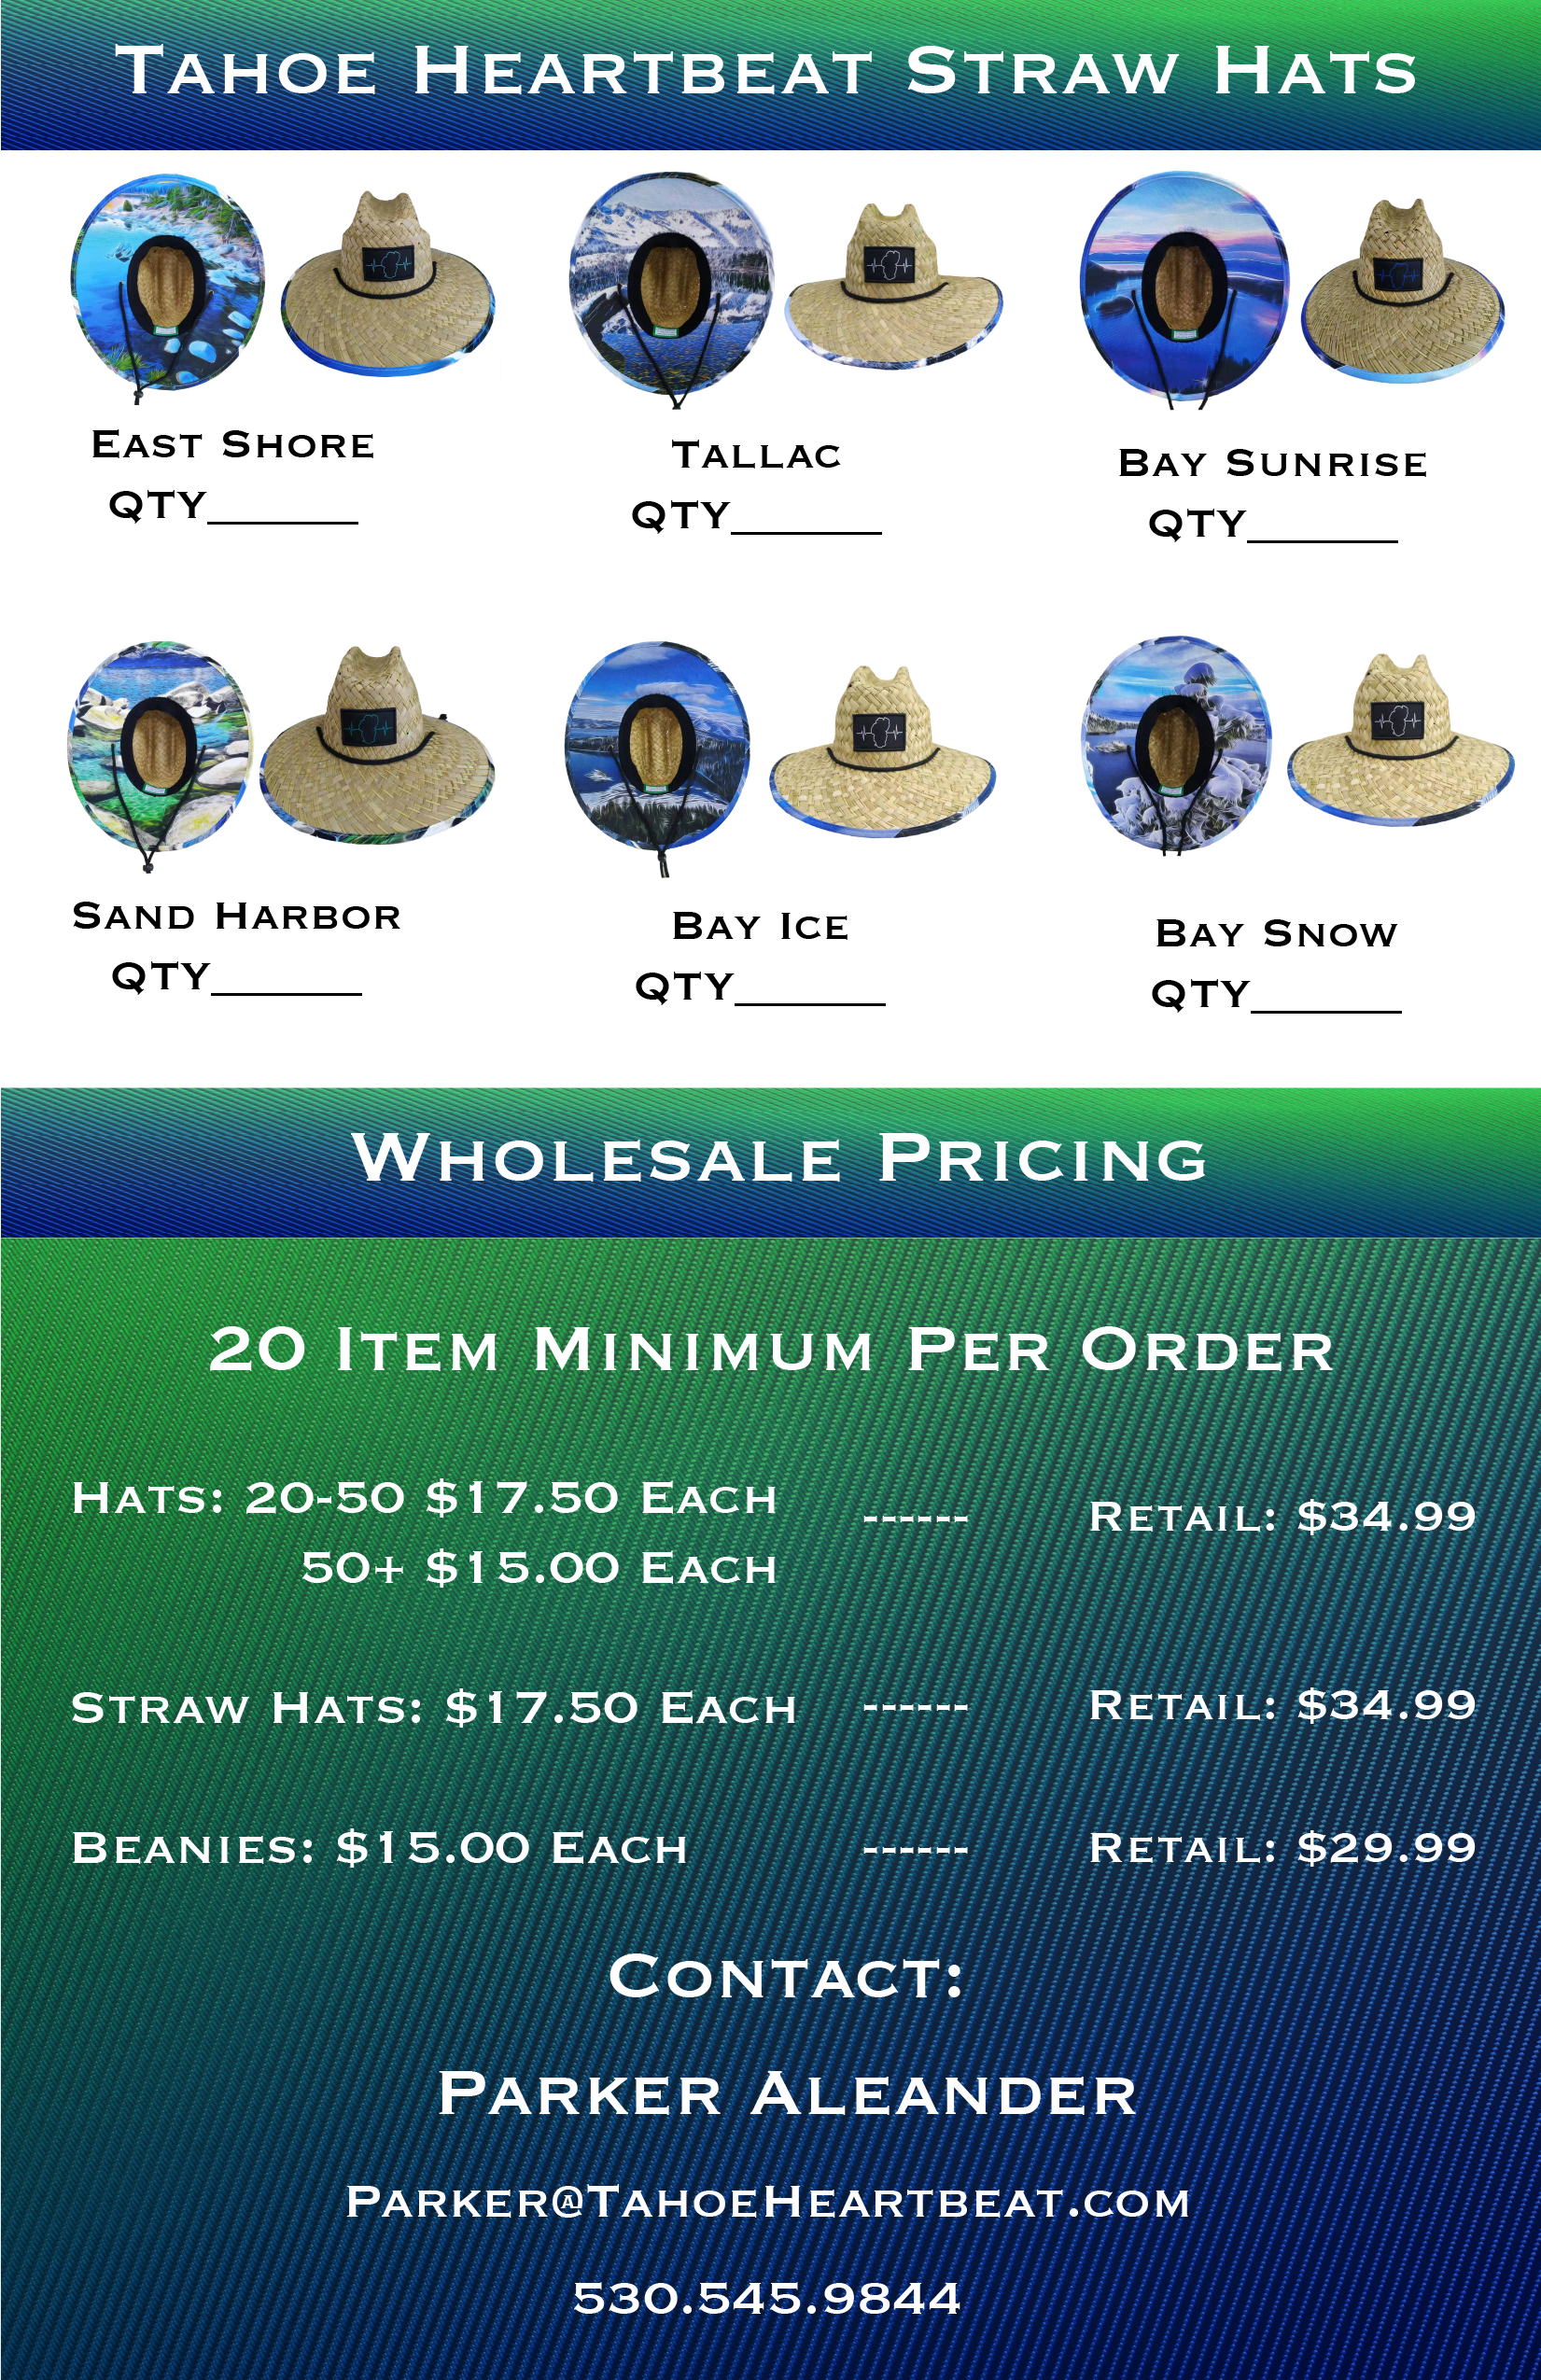 pricing-05.png